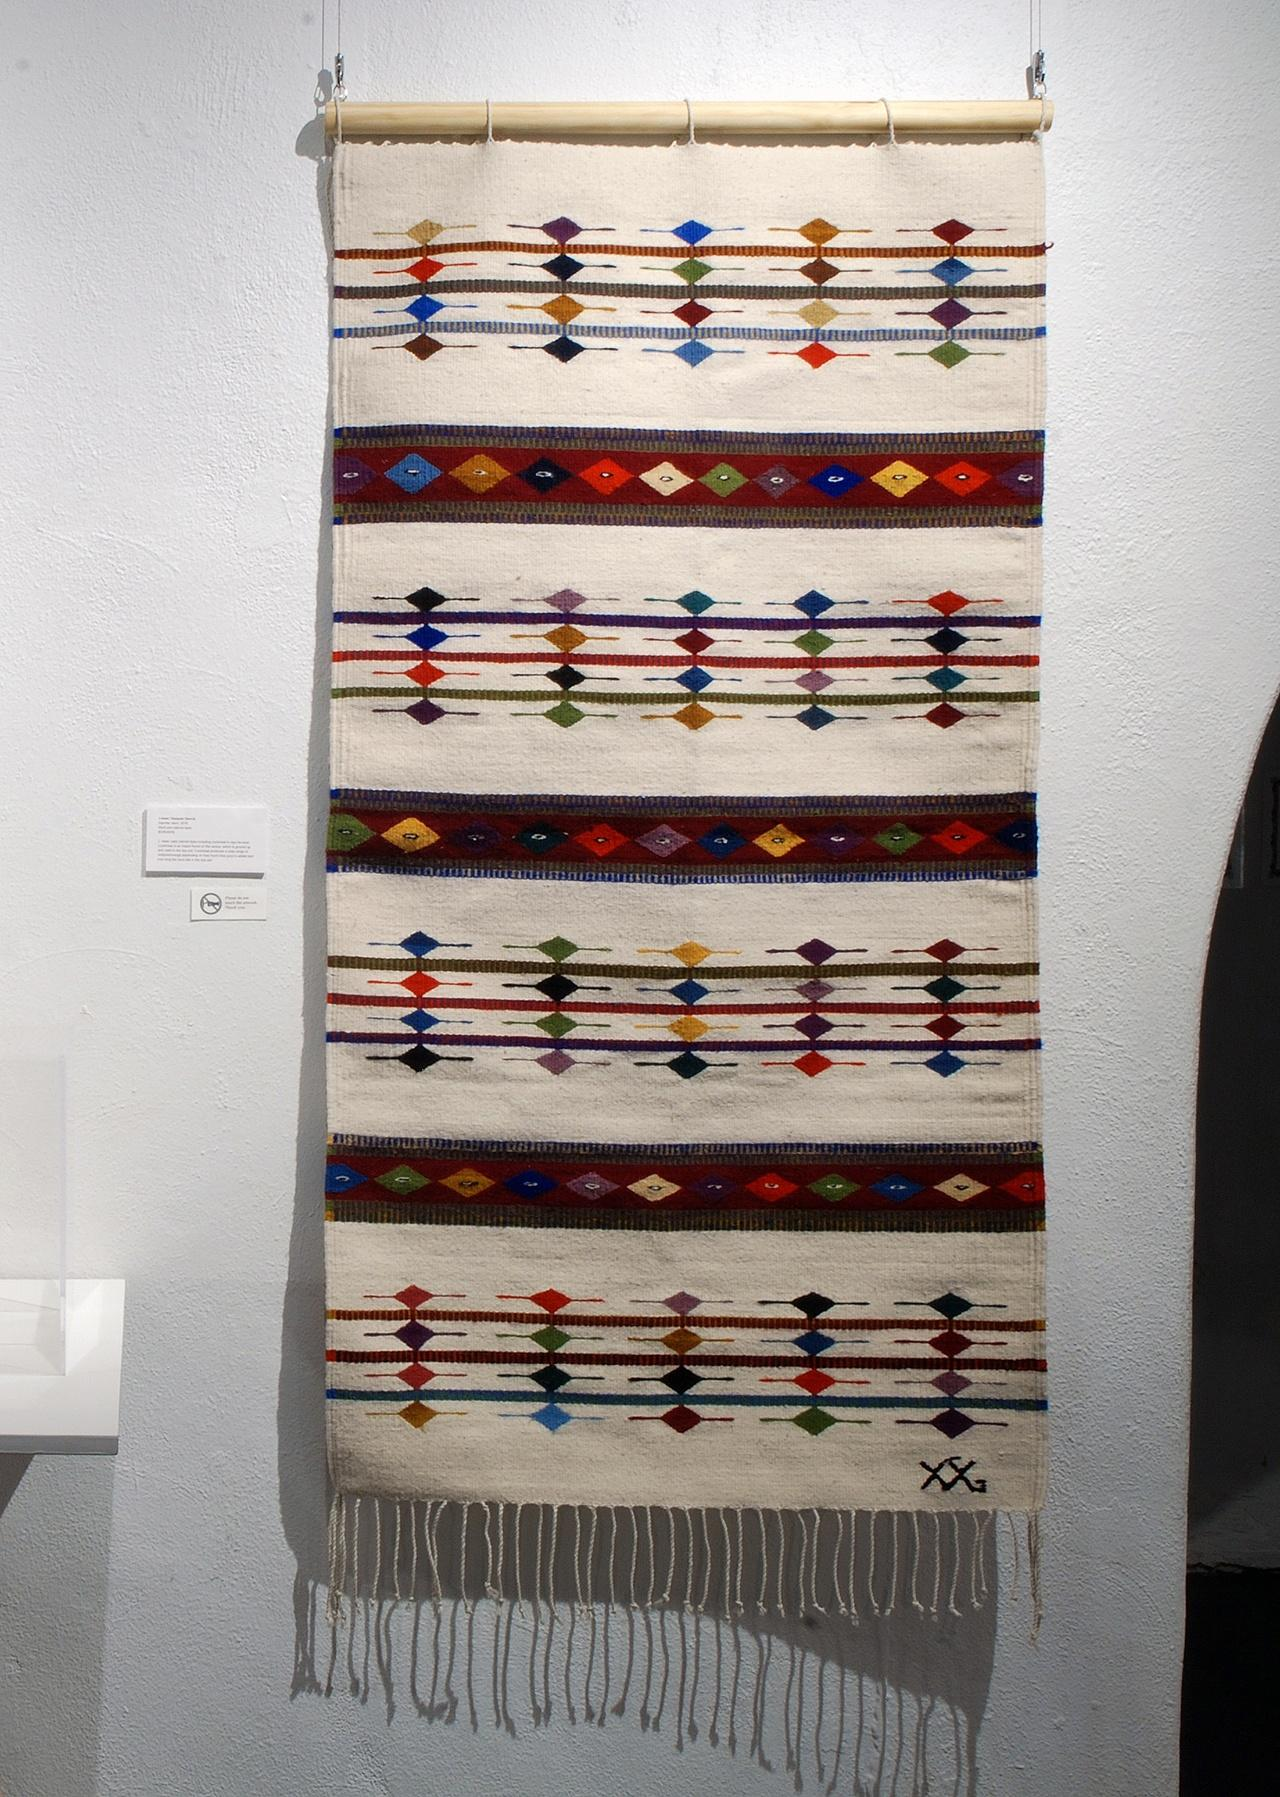 Objects, Borders and Neighbors, J. Isaac Vasquez García, Zapotec stars, 100% wool natural dyes, 2016